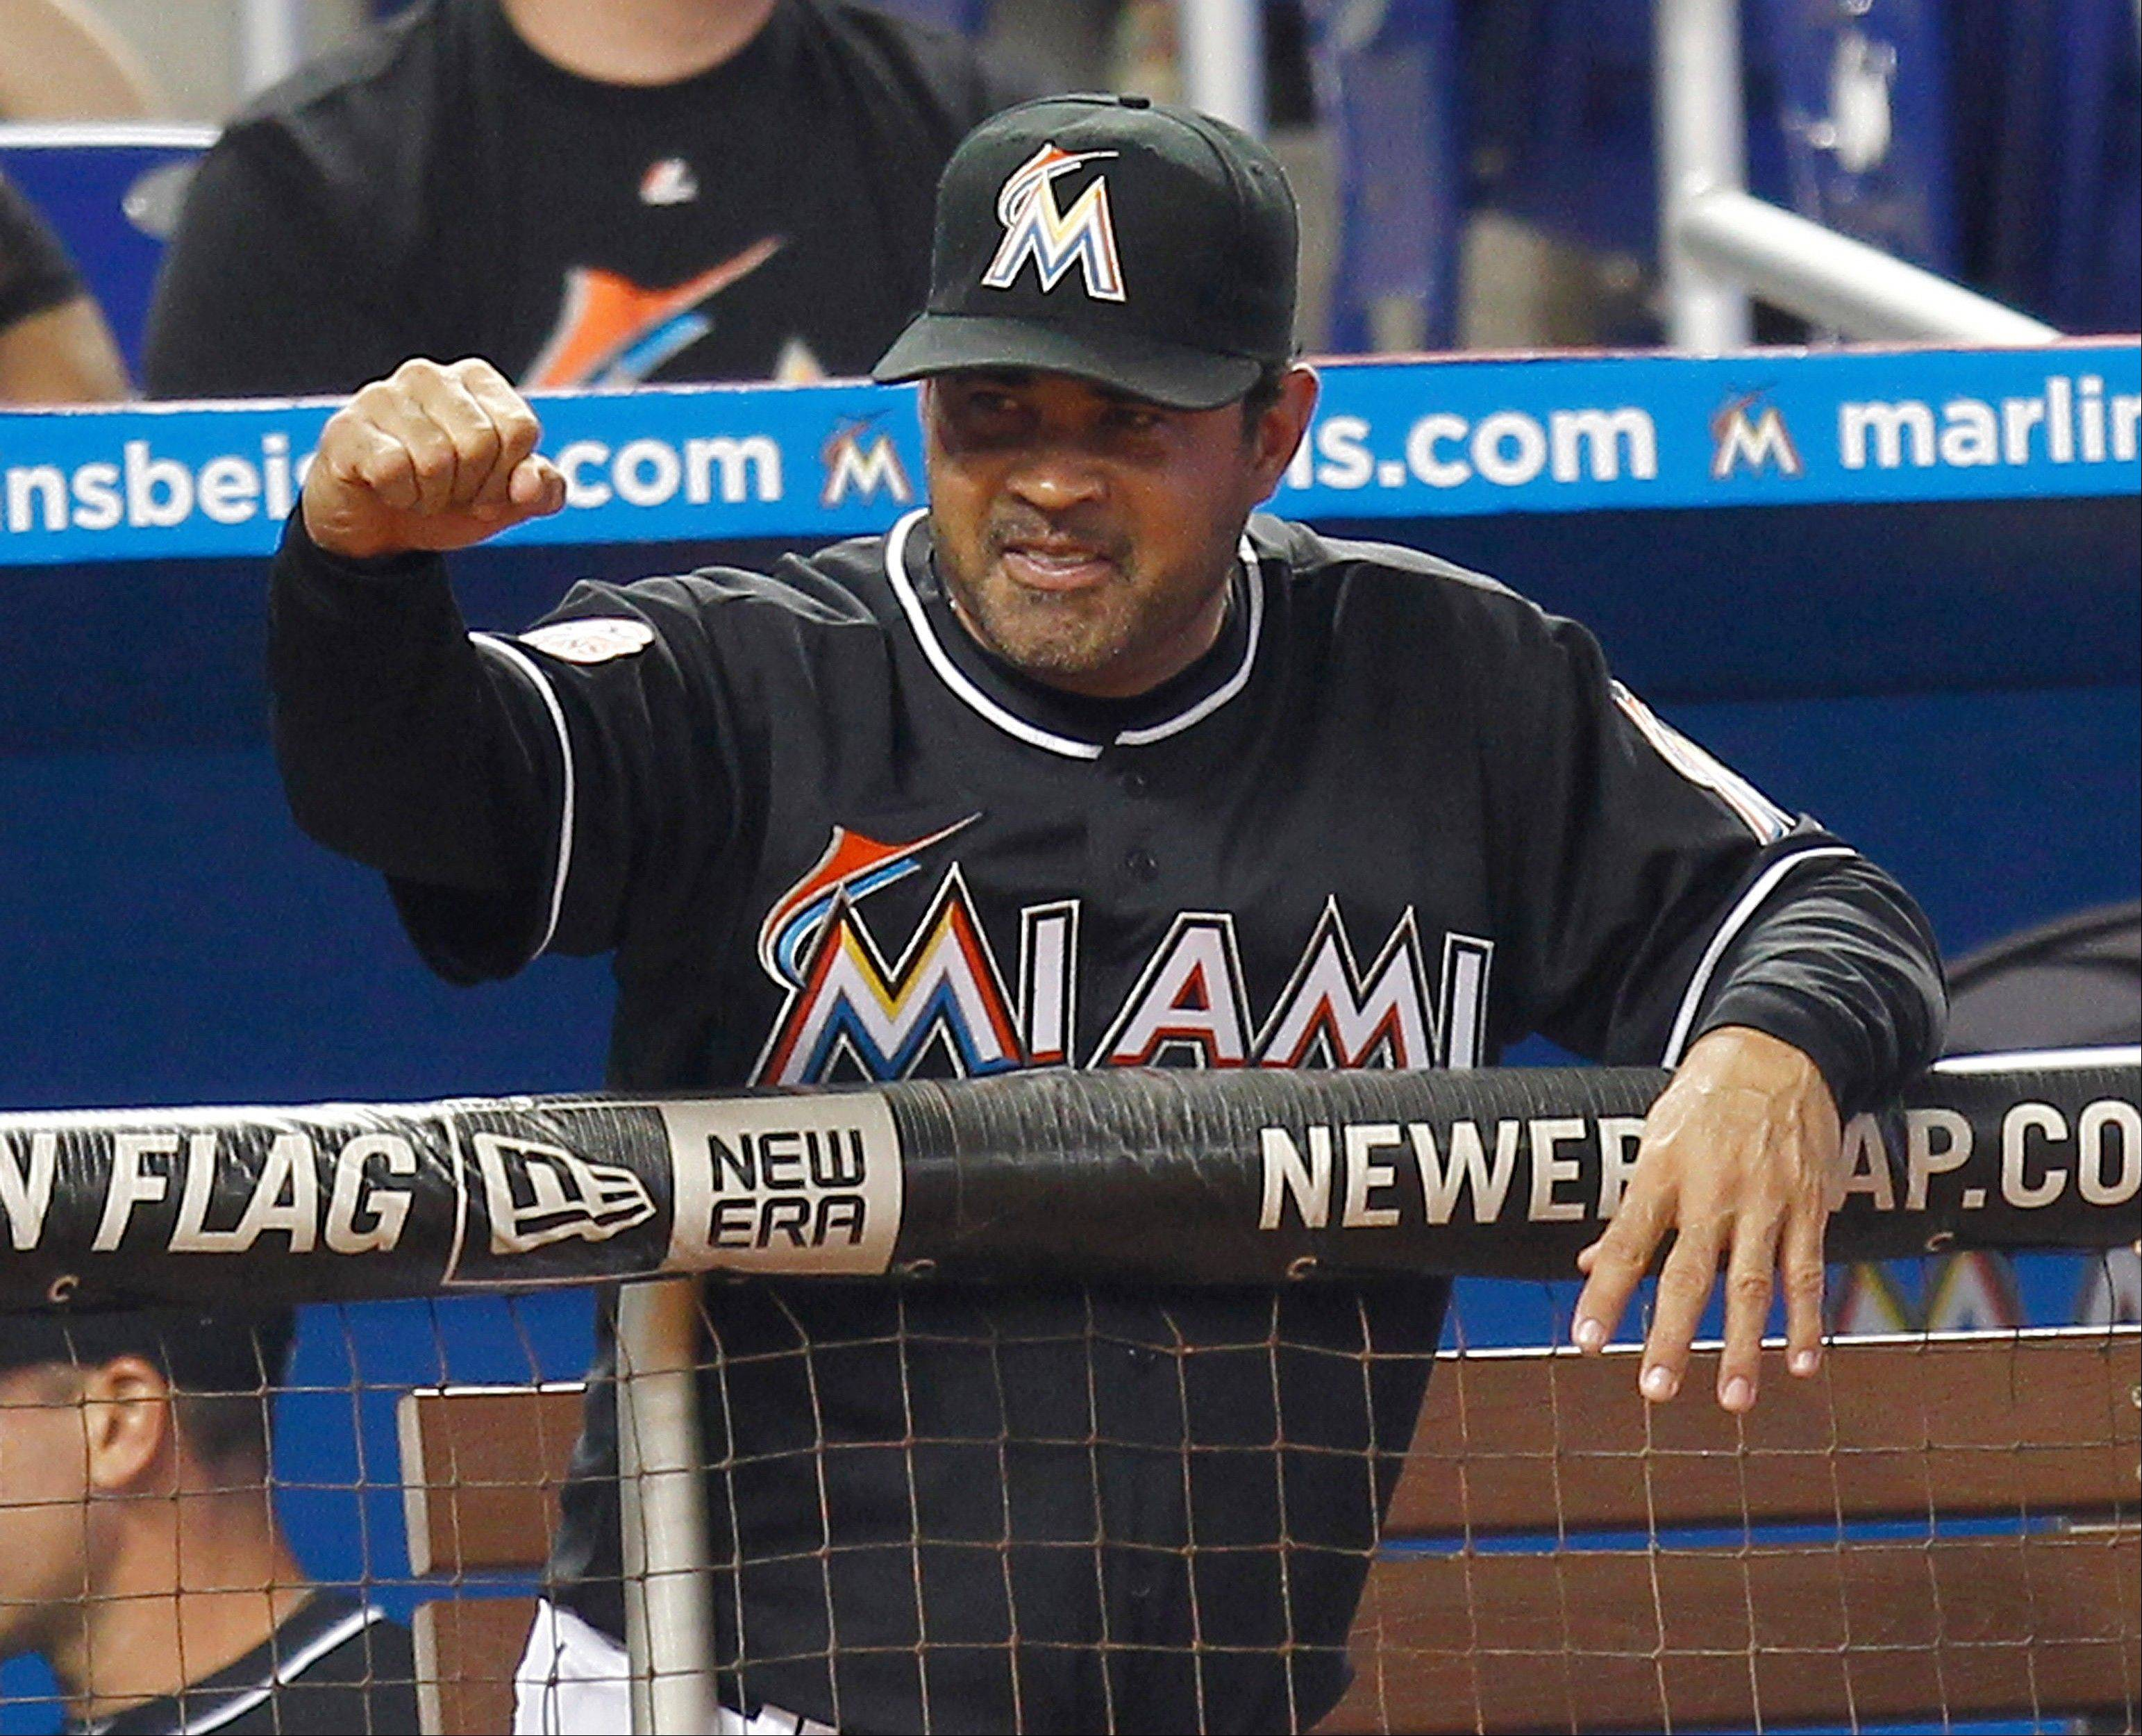 As usual, former White Sox manager Ozzie Guillen, shown here during at game at Miami last weekend, was not at a loss for words Tuesday night when he brought his Marlins to Wrigley Field.